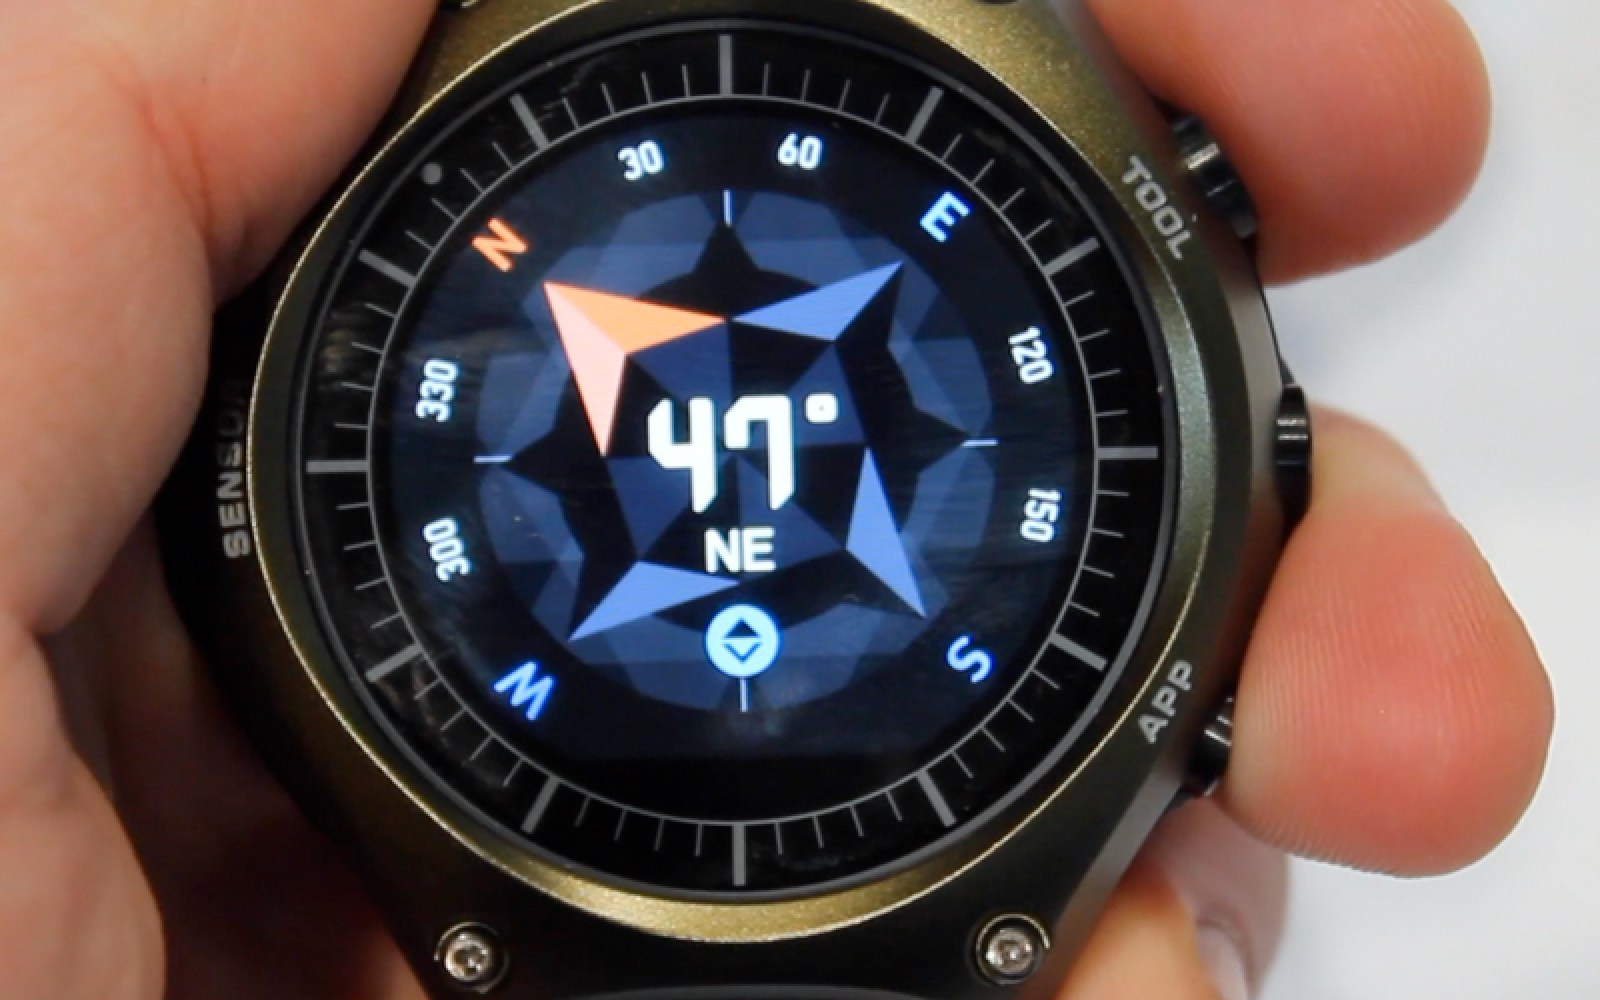 Hands on with Casio's ultra-rugged Android Wear smartwatch [Video]